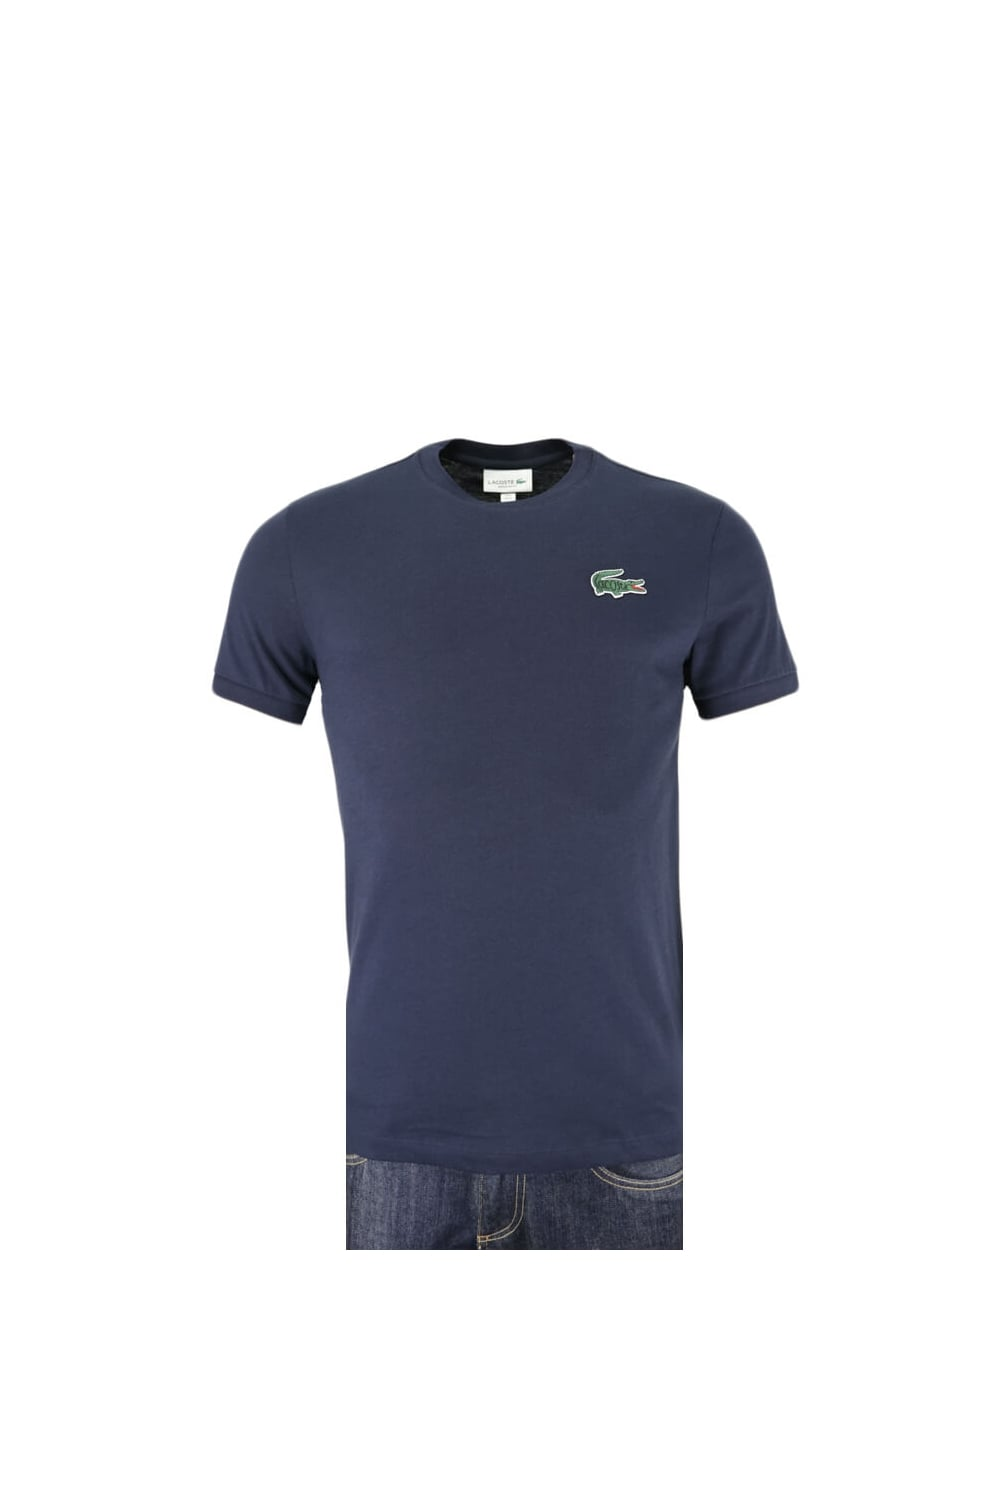 e905479c0 Lacoste T-shirt Big Crocodile Navy - Clothing from Michael Stewart ...